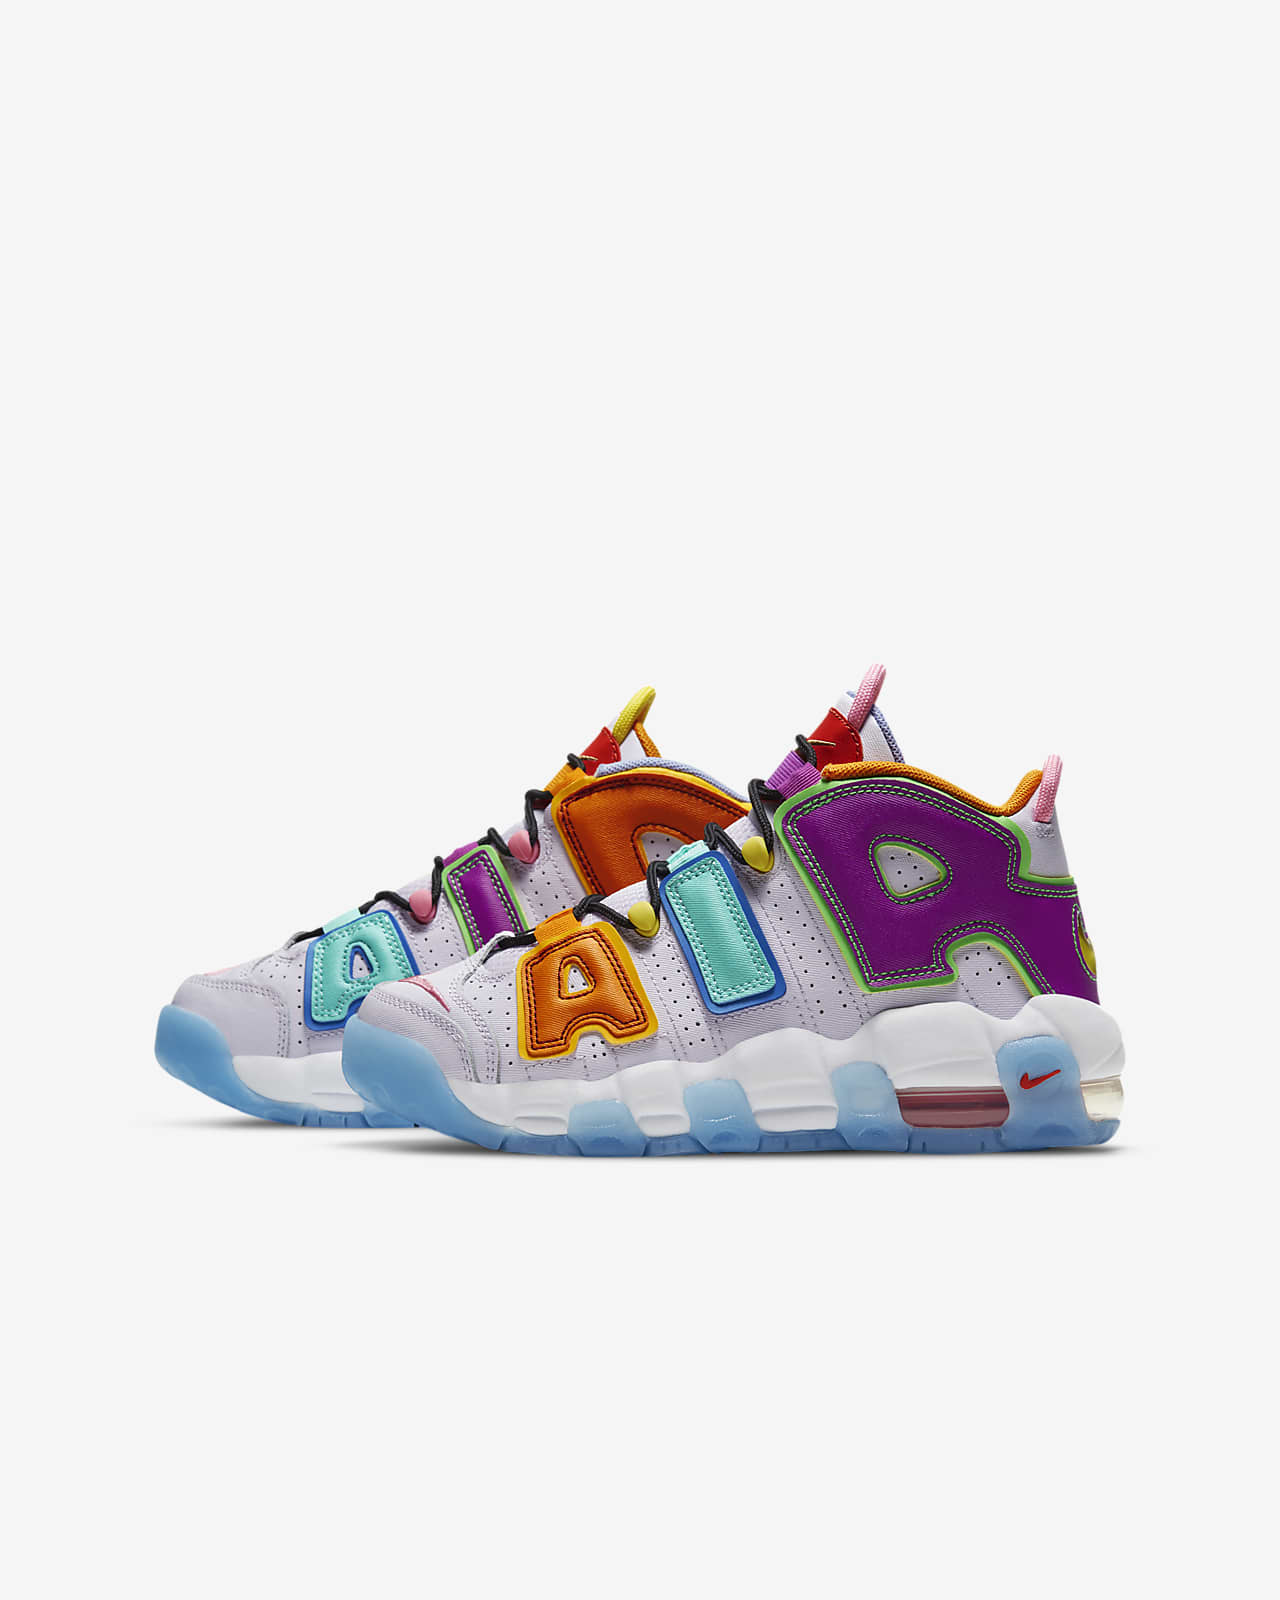 nike uptempo shoes price